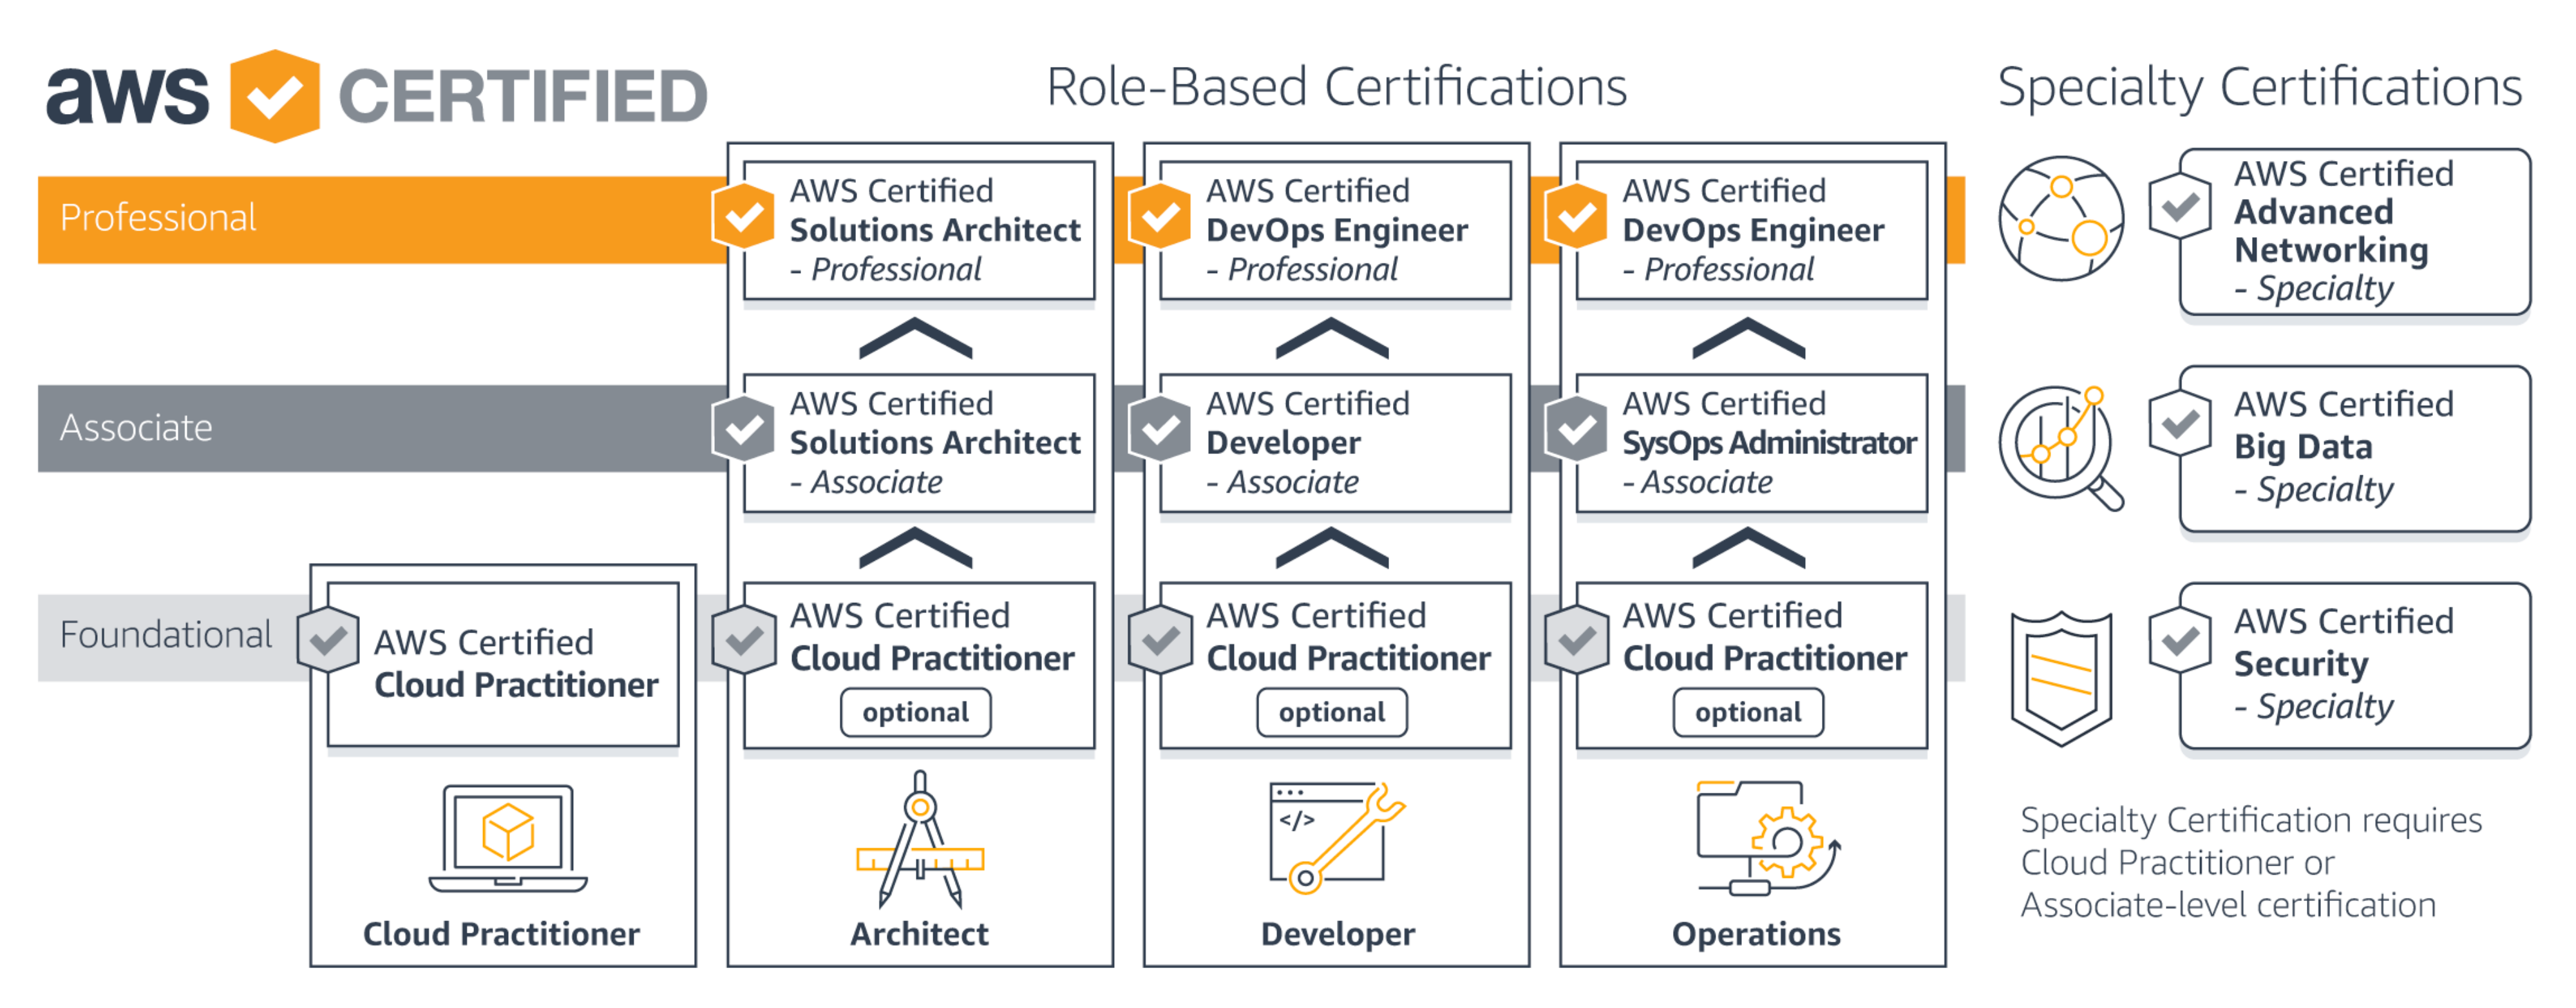 How To Prepare And Pass Aws Certified Cloud Practitioner Certification Exam Cyber Security Career Solution Architect Exam